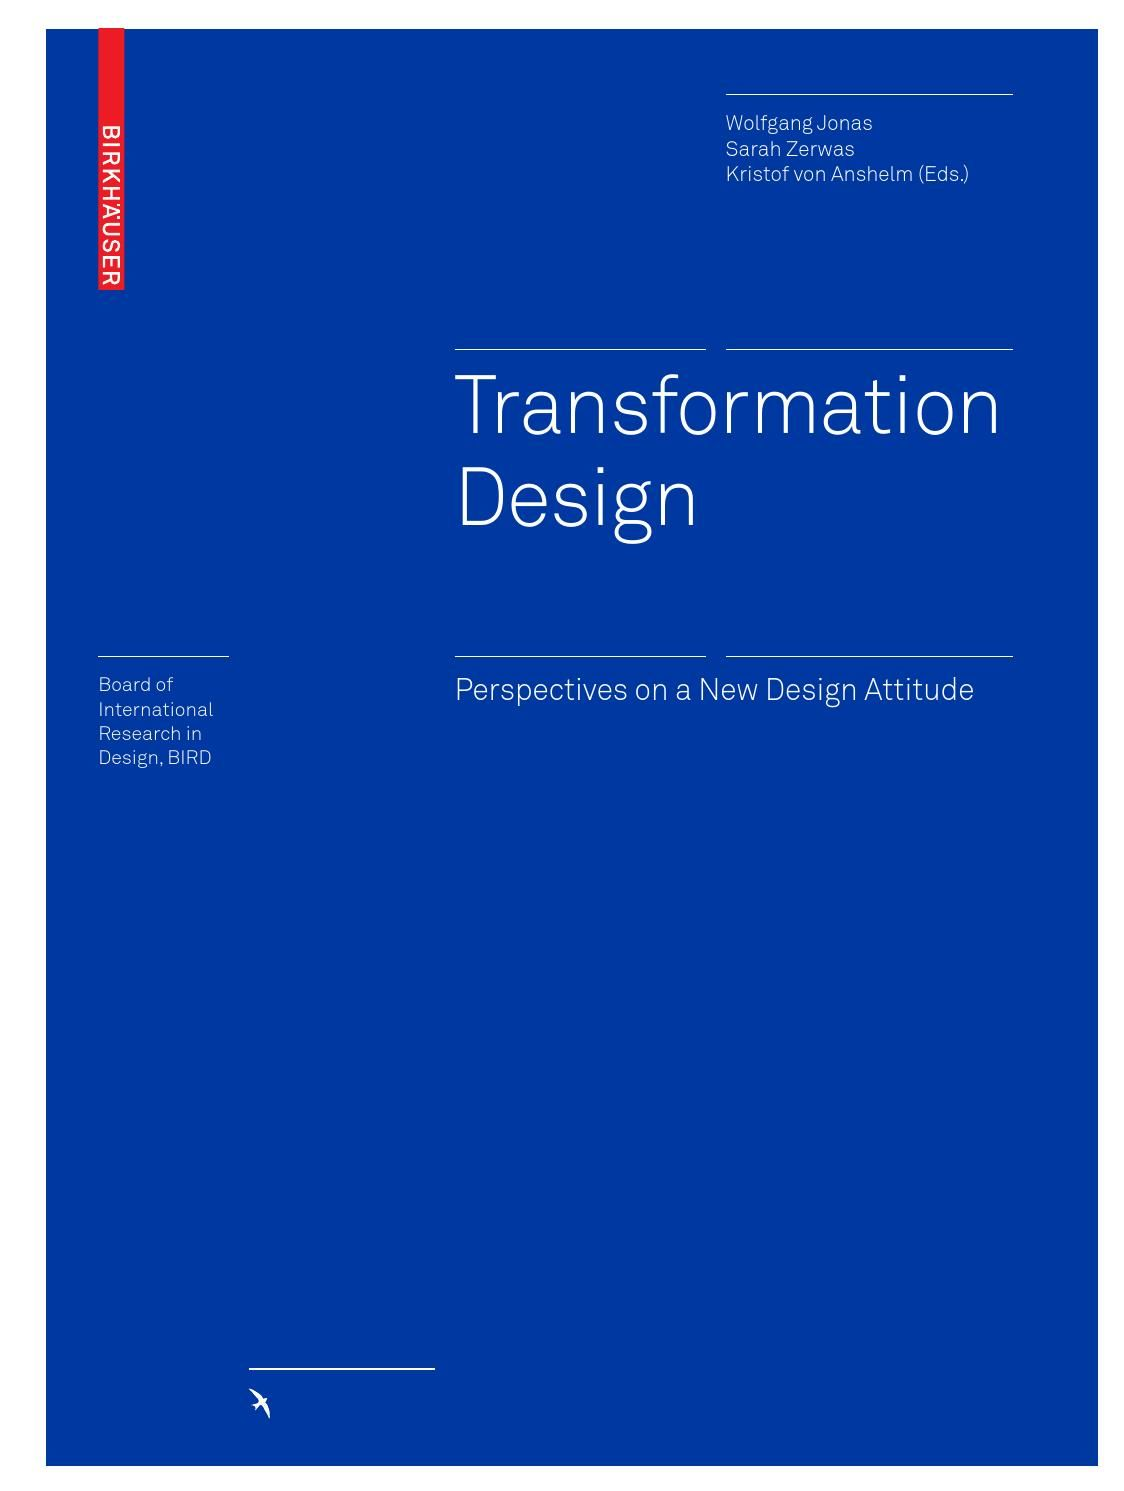 Transformation Design Design Thinking Design Theory Human Centered Design